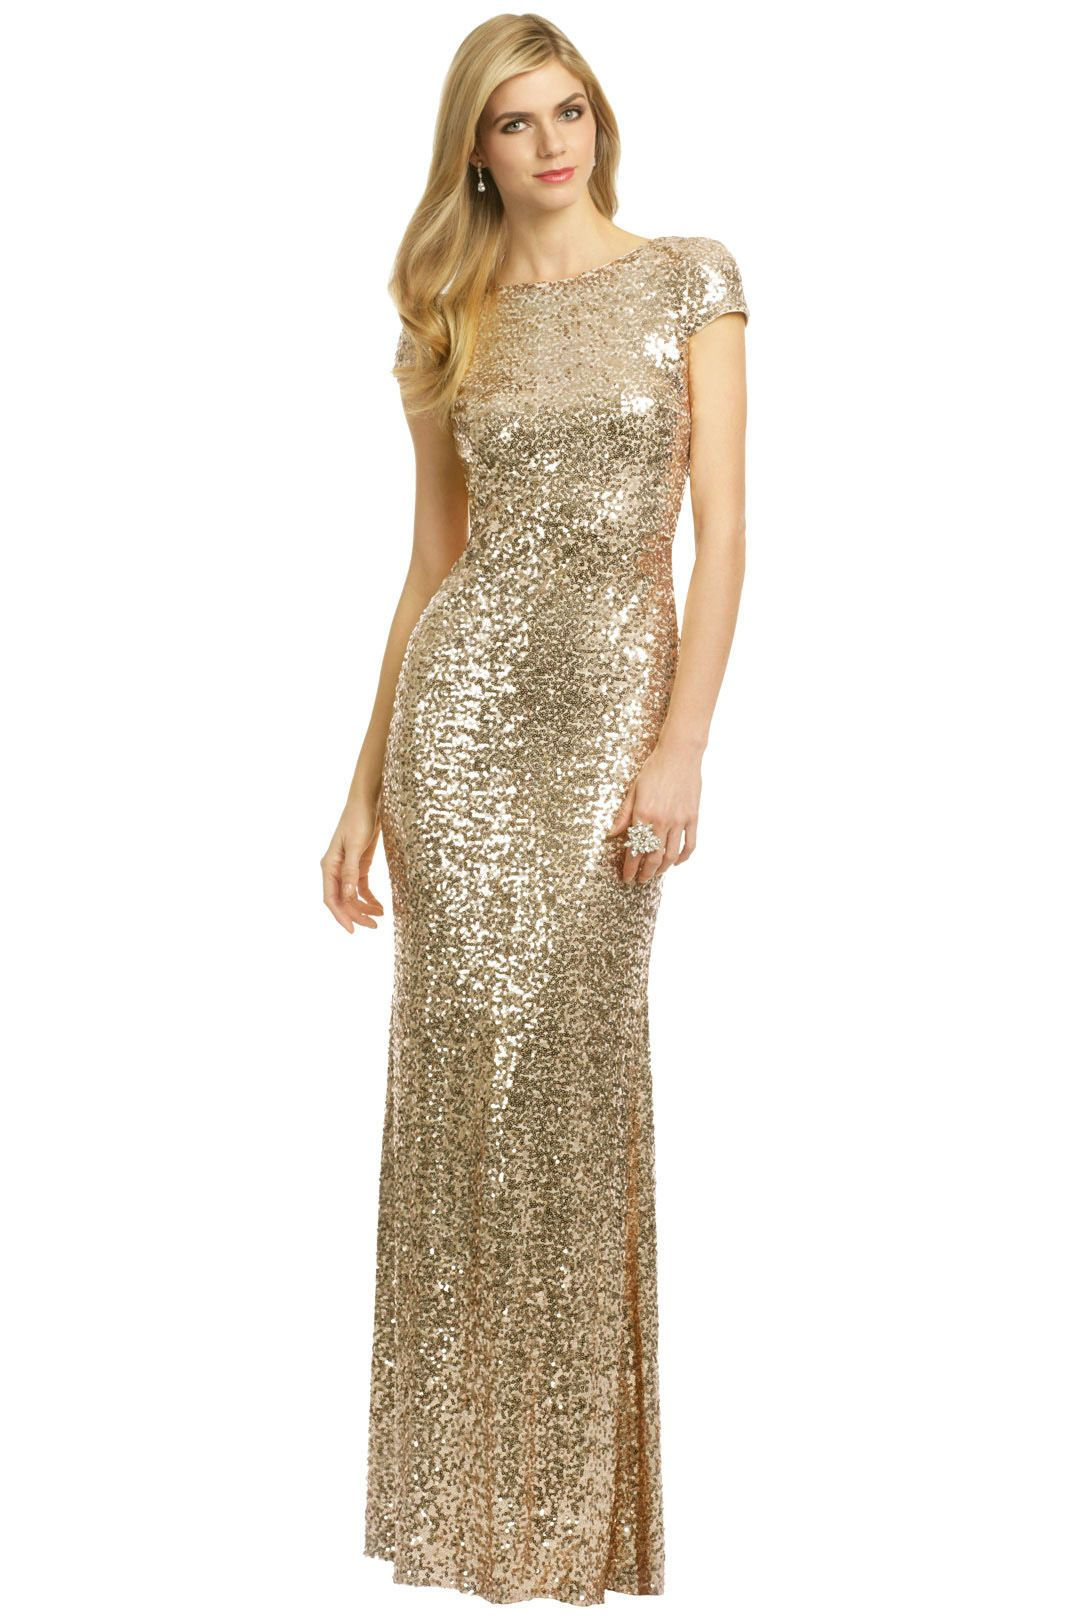 Night at the oscars gown by badgley mischka at 125 rent the night at the oscars gown by badgley mischka at 125 rent the runway ombrellifo Image collections